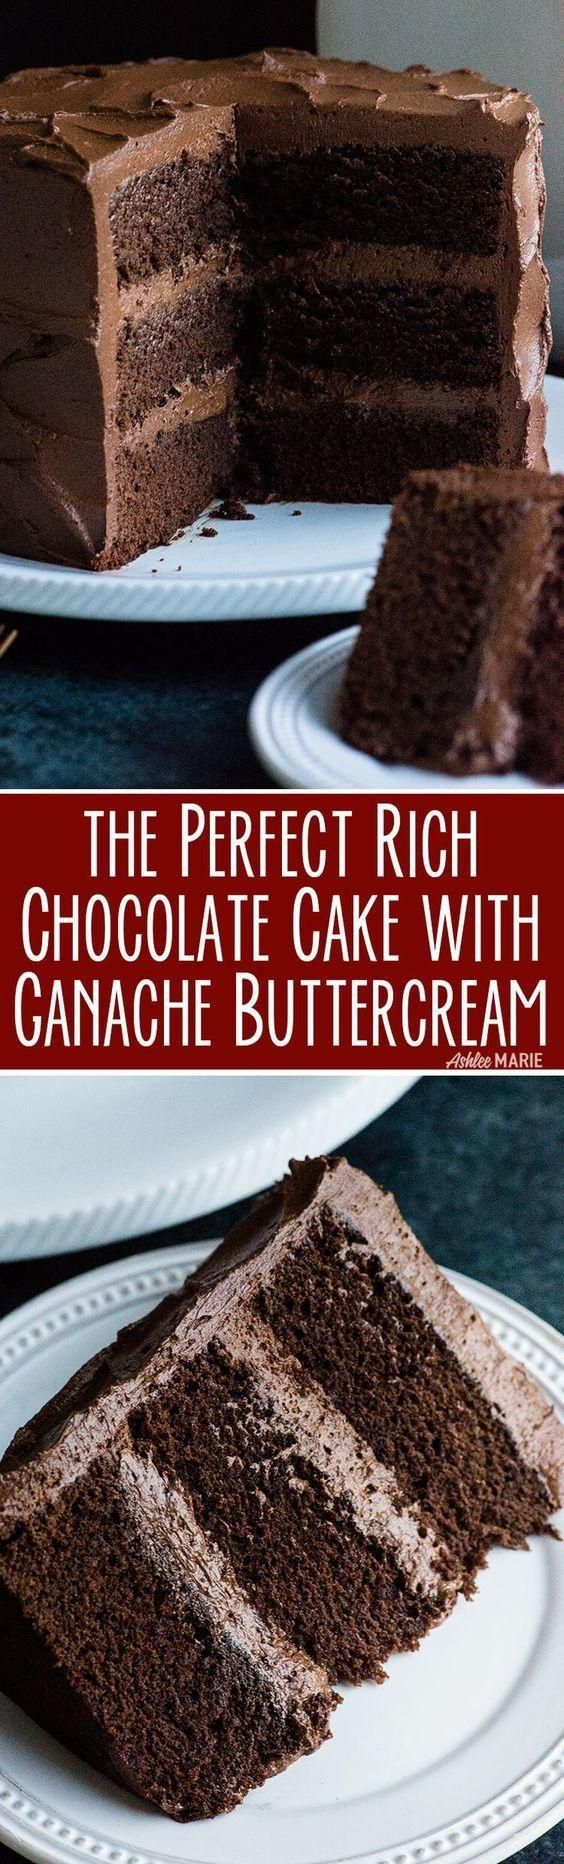 The prefect chocolate cake! A rich and decadent chocolate cake recipe with video tutorial. This cake tastes amazing AND is dense enough for carving and building 3D cakes. Delicious! #chocolate #cake